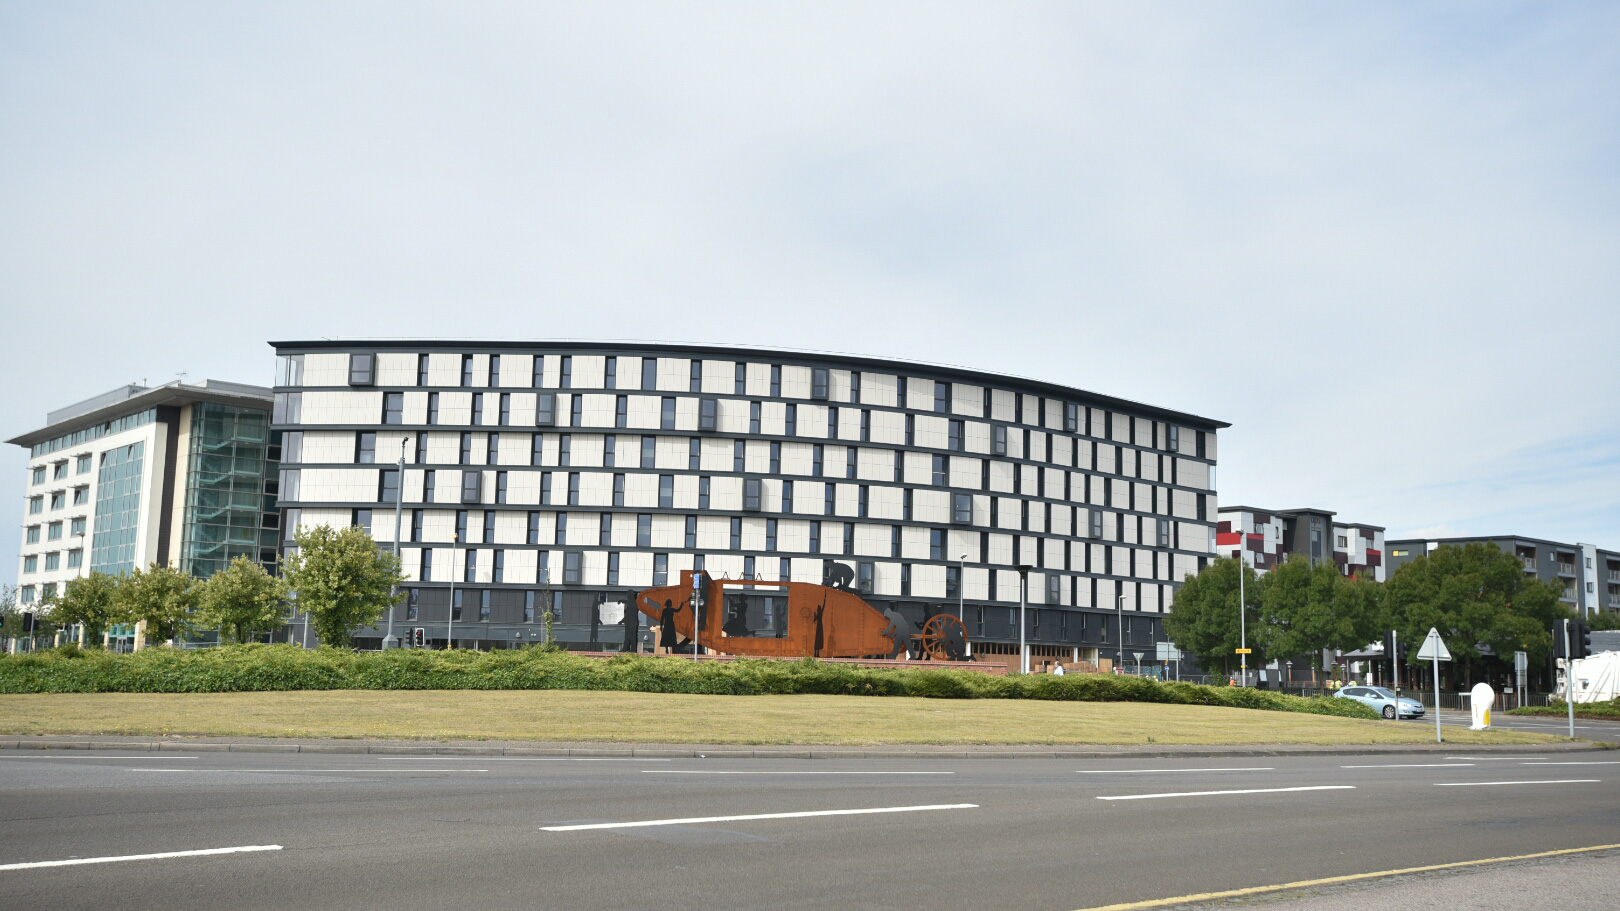 The Gateway student accommodation in Lincoln. Photo: Steve Smailes for The Lincolnite